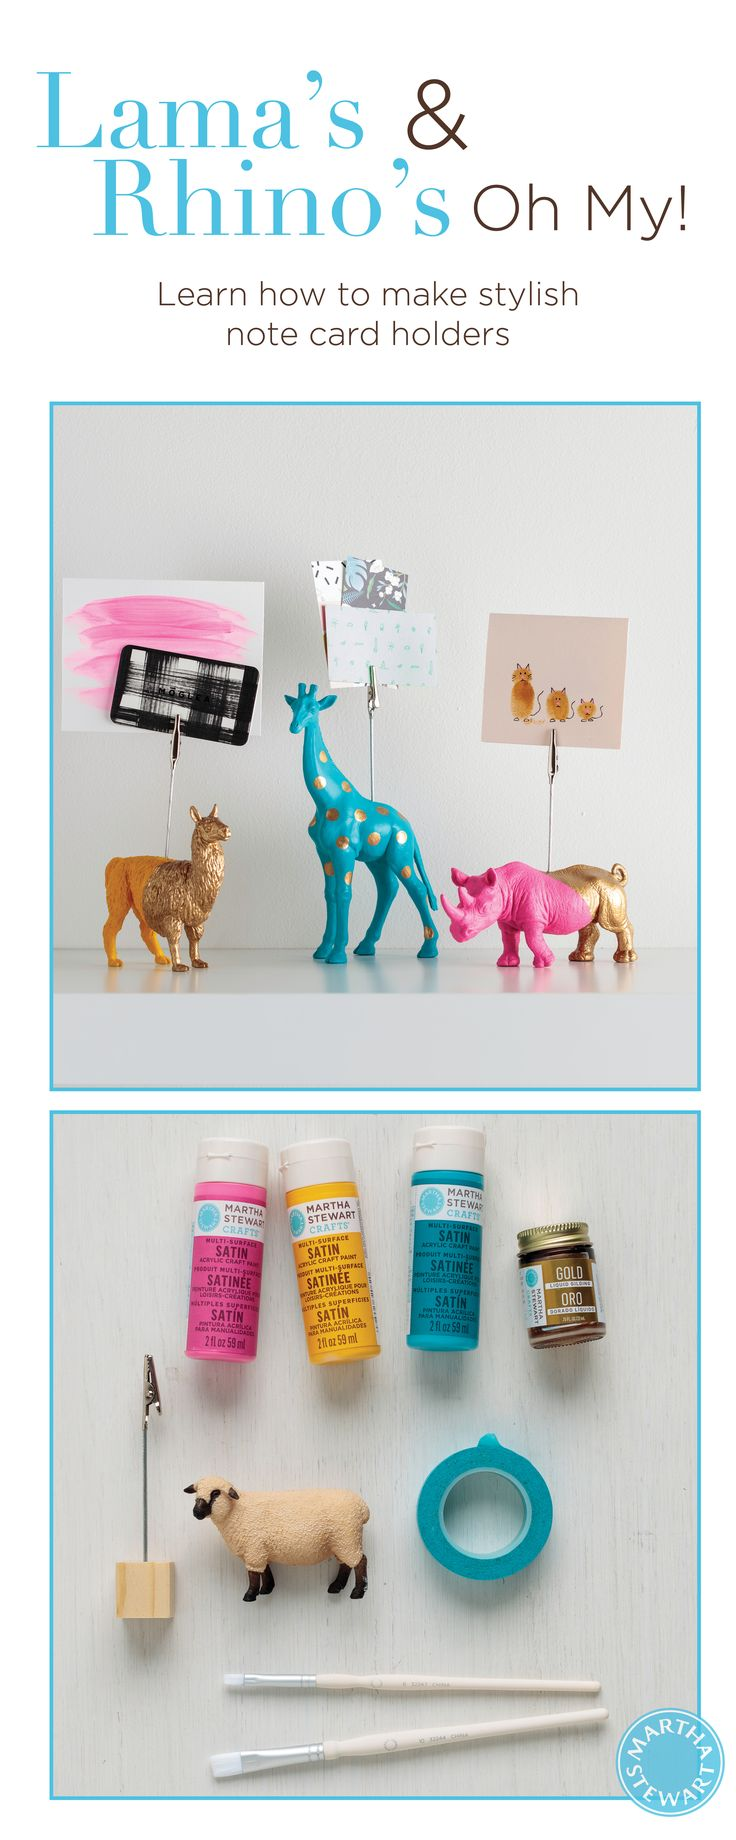 Gilded Animal Note Holder - DIY Office Accessories Transform plastic animal figurines into chic note holders using Martha Stewart Multi-Surface Acrylic Paint and liquid gilding.